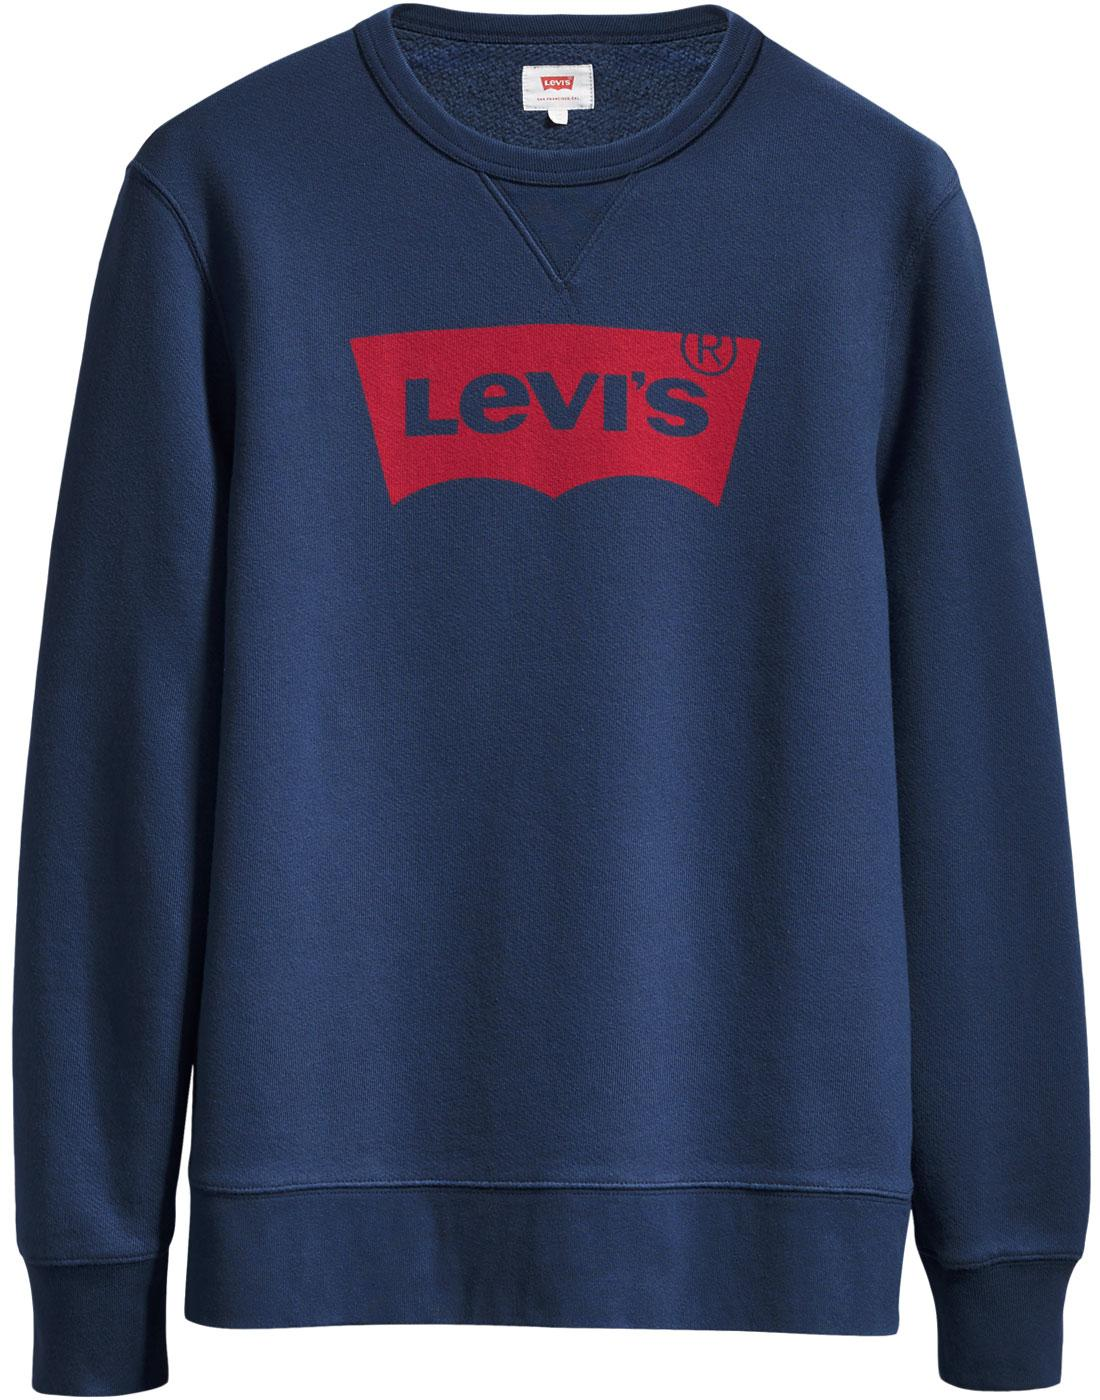 Levis Retro 70s Batwing Graphic Crew Neck Sweatshirt Dress Blues